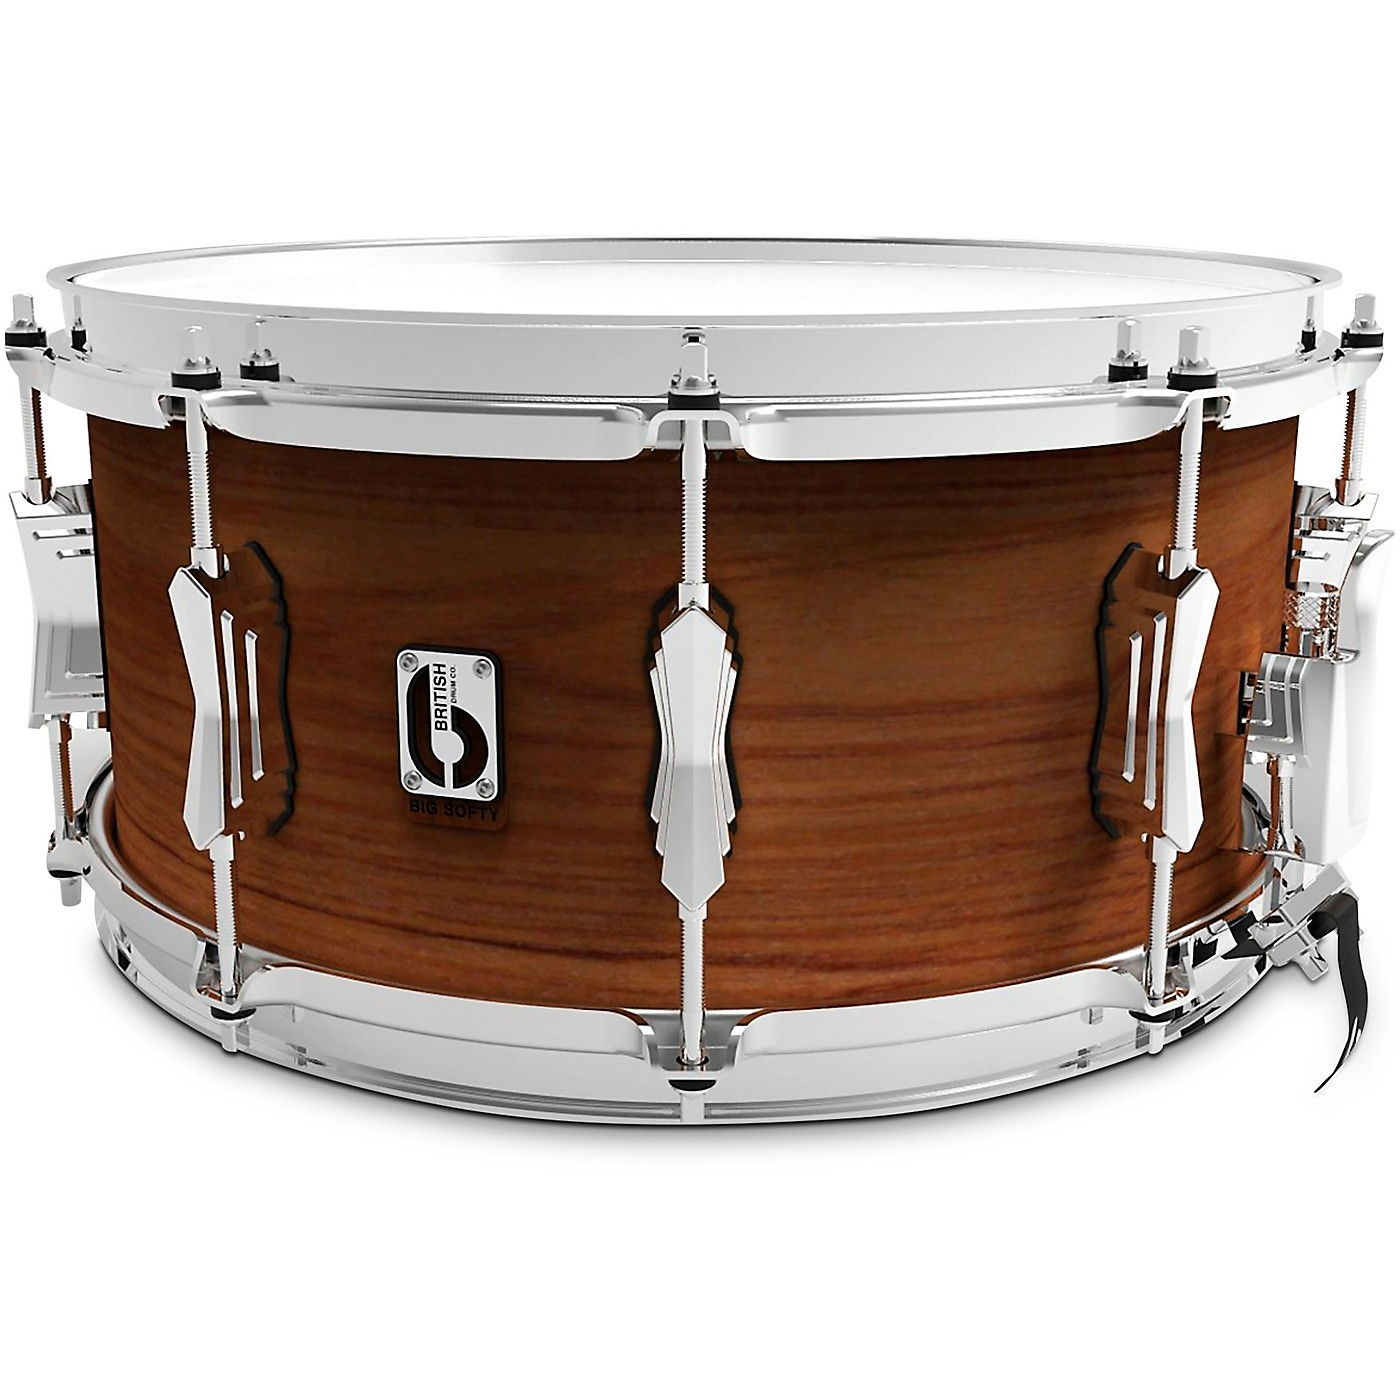 British Drum Co. Big Softy Pro Snare Drum thumbnail